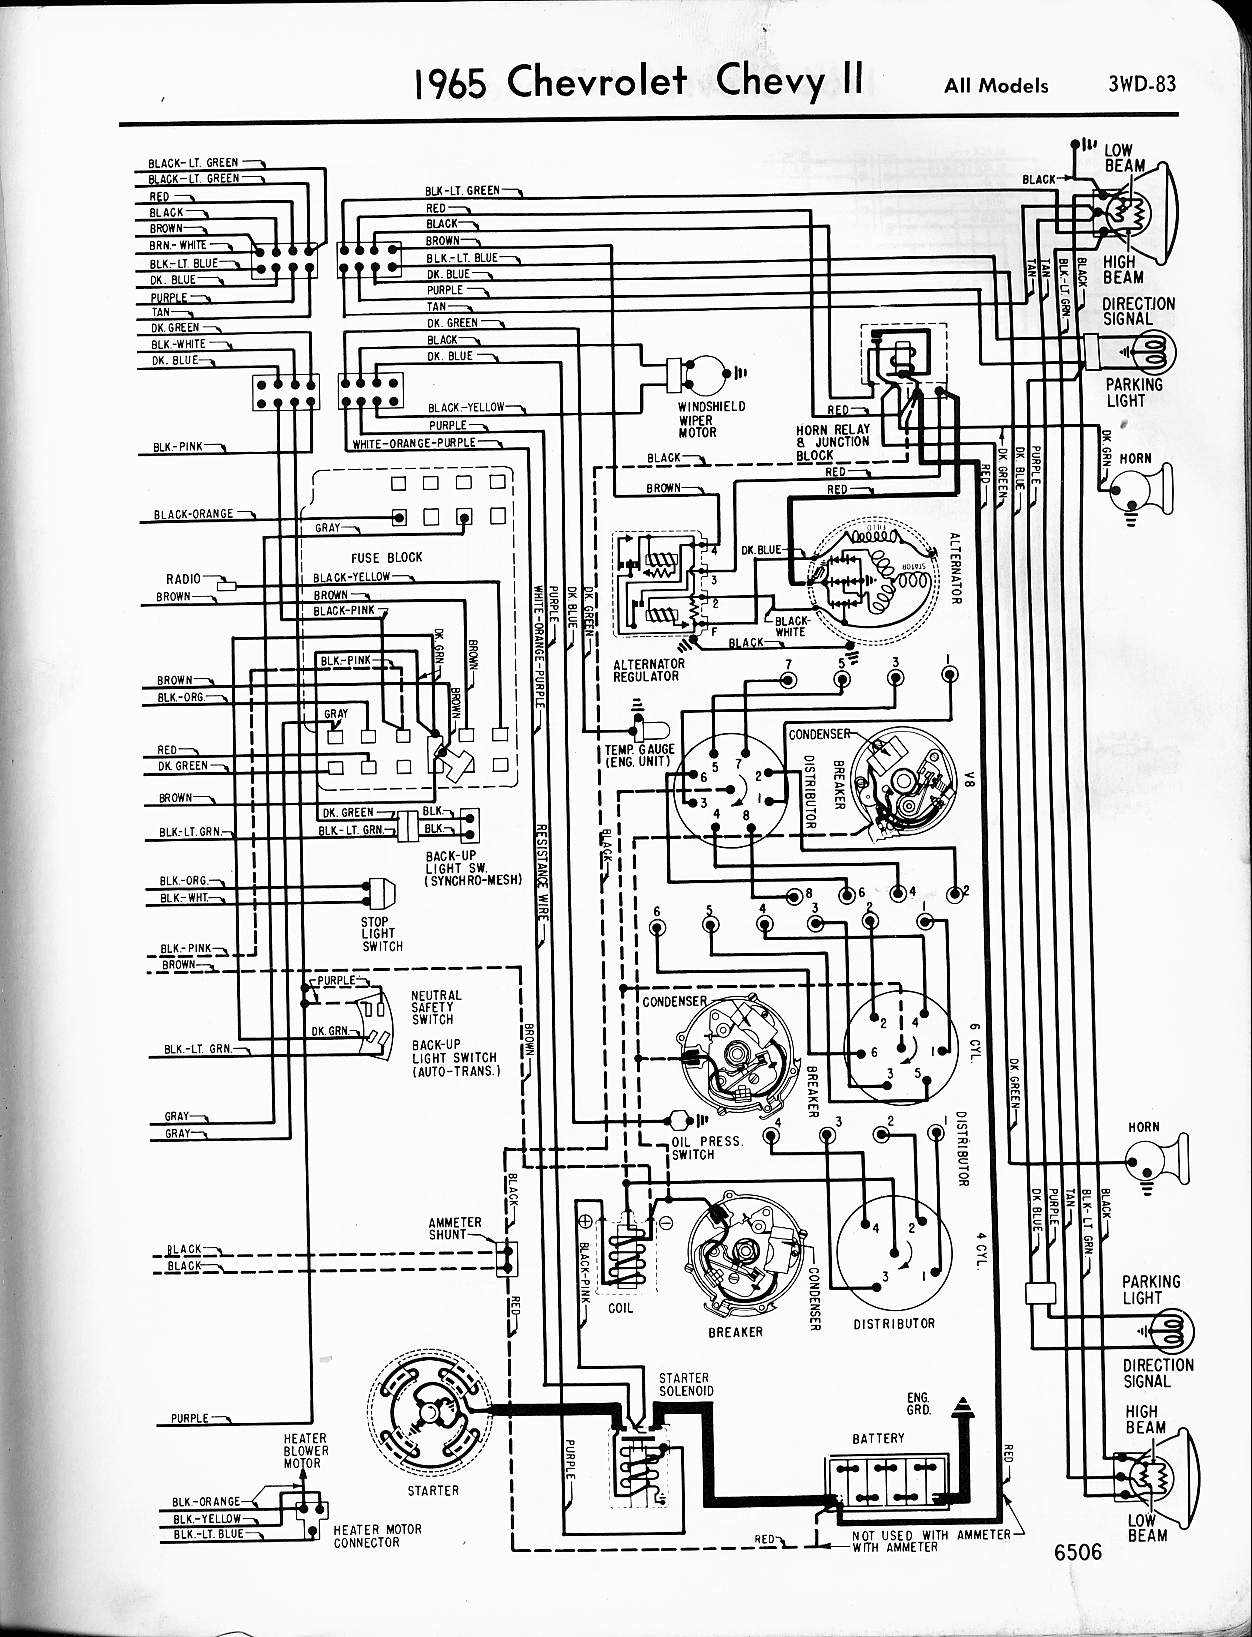 MWireChev65_3WD 083 65 chevy truck wiring diagram 65 chevy truck distributor diagram 1968 mustang tail light wiring diagram at bakdesigns.co